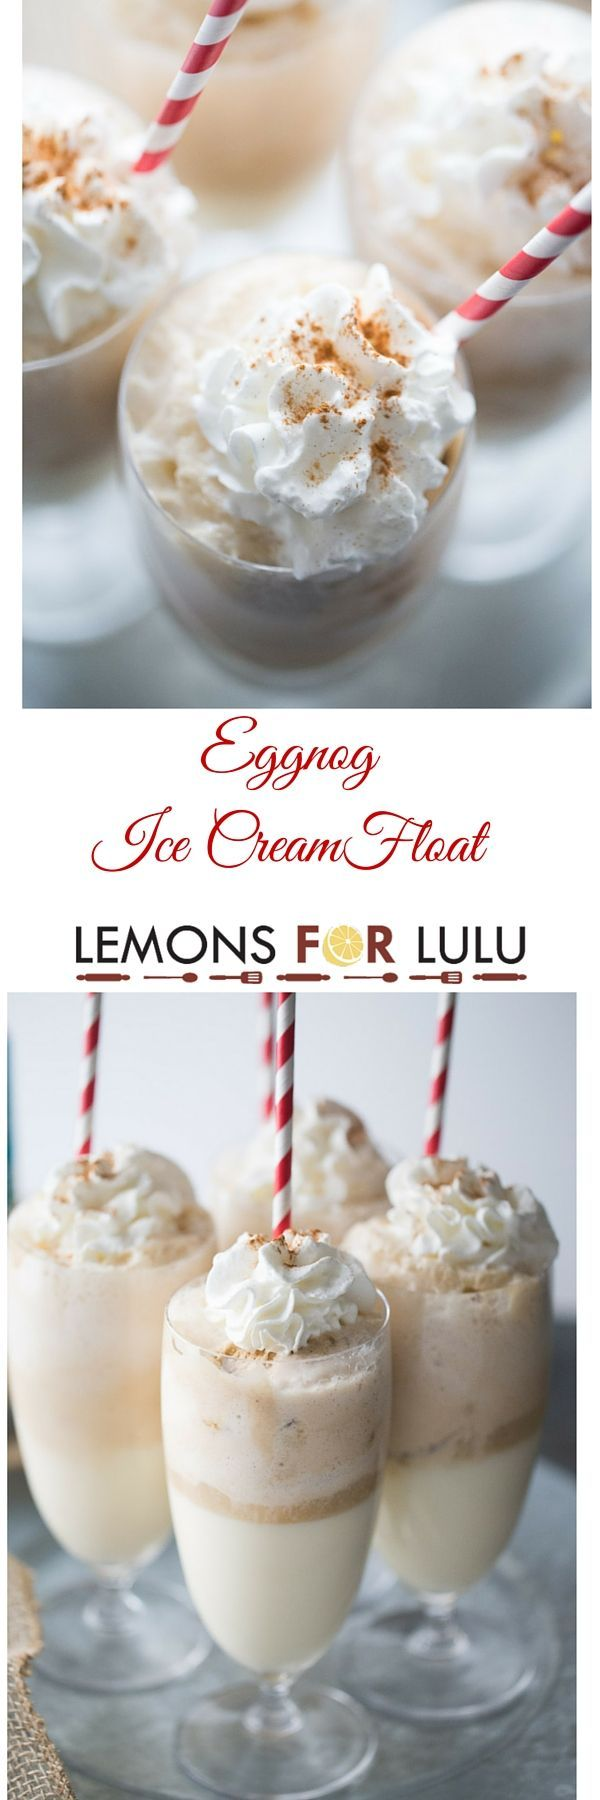 Cinnamon ice cream is mixed with creamy eggnog and topped with ginger ale in this easy ice cream treat! This ice cream float is a nice change from your ordinary eggnog drink recipe, it's a fun holiday sweet that is fun for all ages! lemonsforlulu.com